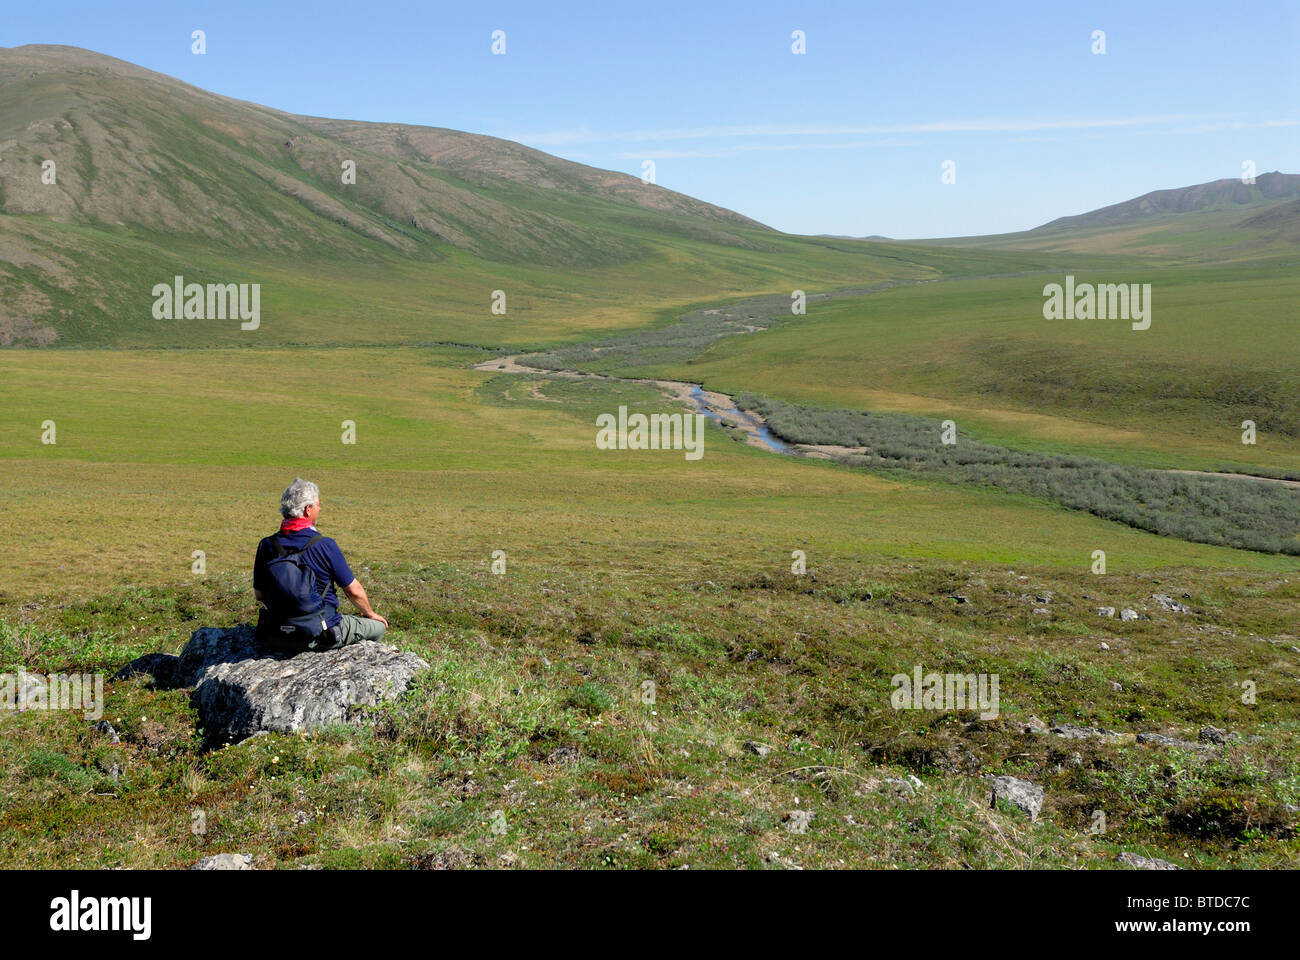 Senior male hiker resting on a rock outcrop enjoying the scenic view of tundra at Caribou Pass, ANWR, Arctic Alaska, - Stock Image